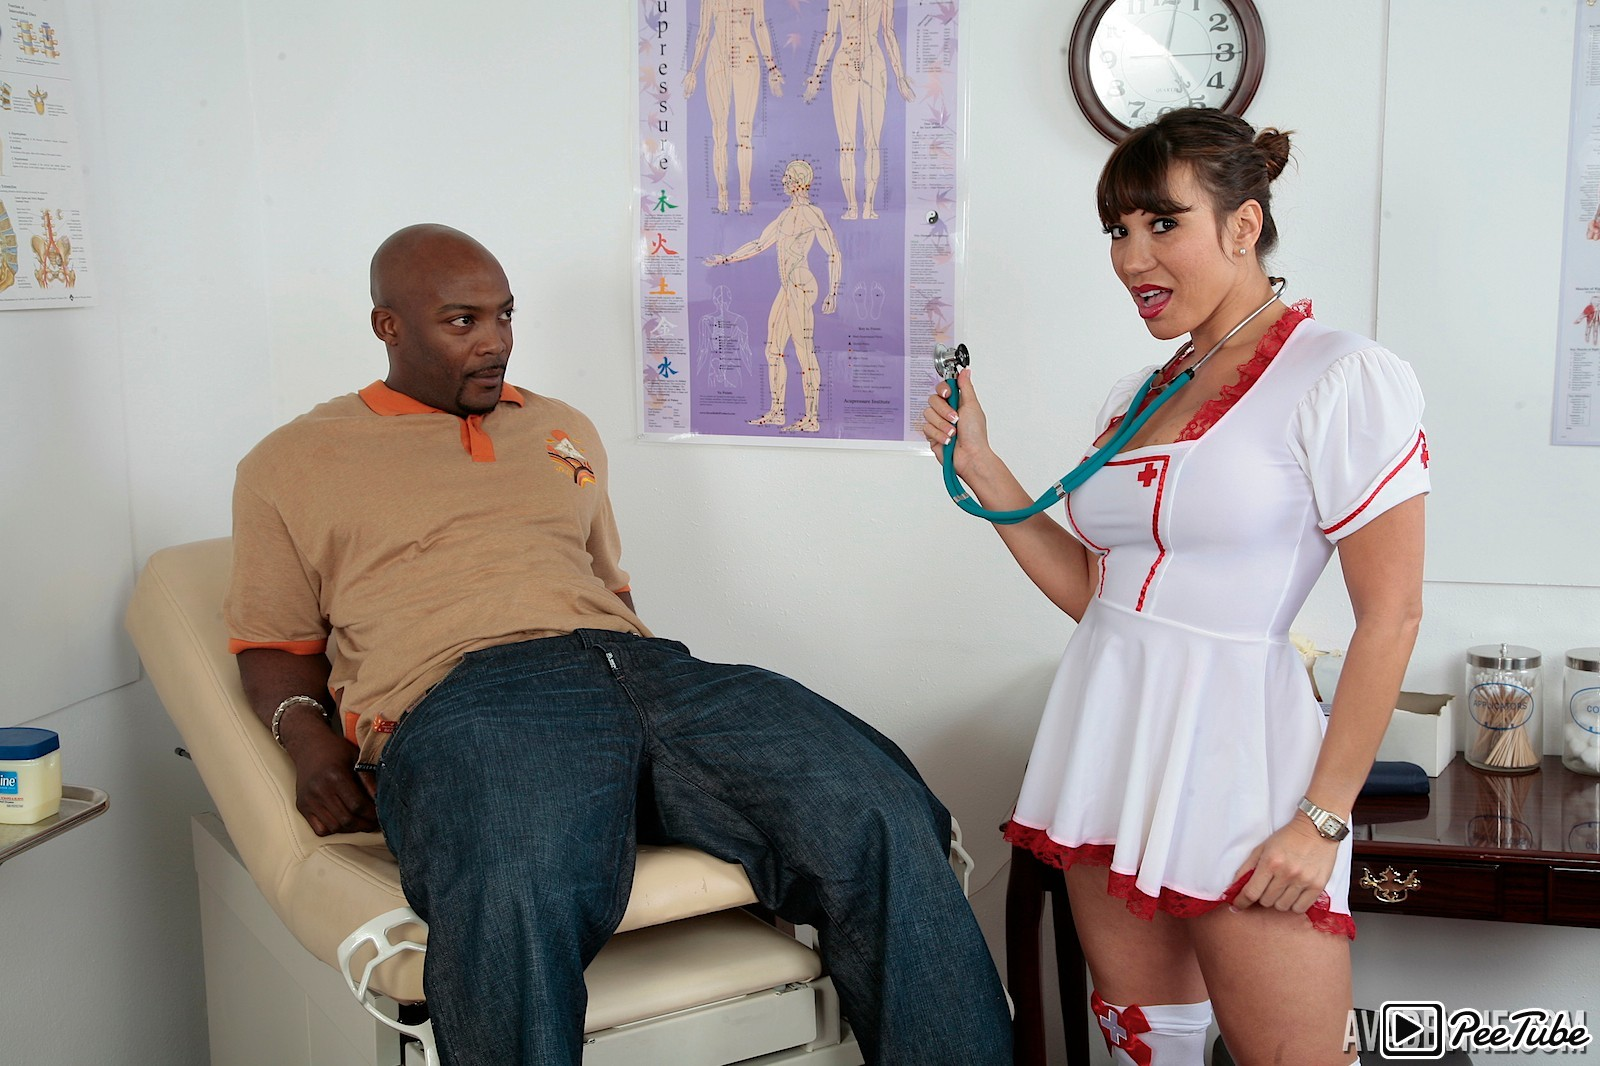 Ava Devine Gold Tube Porn milehighselection – ebony chicks with ivory dicks